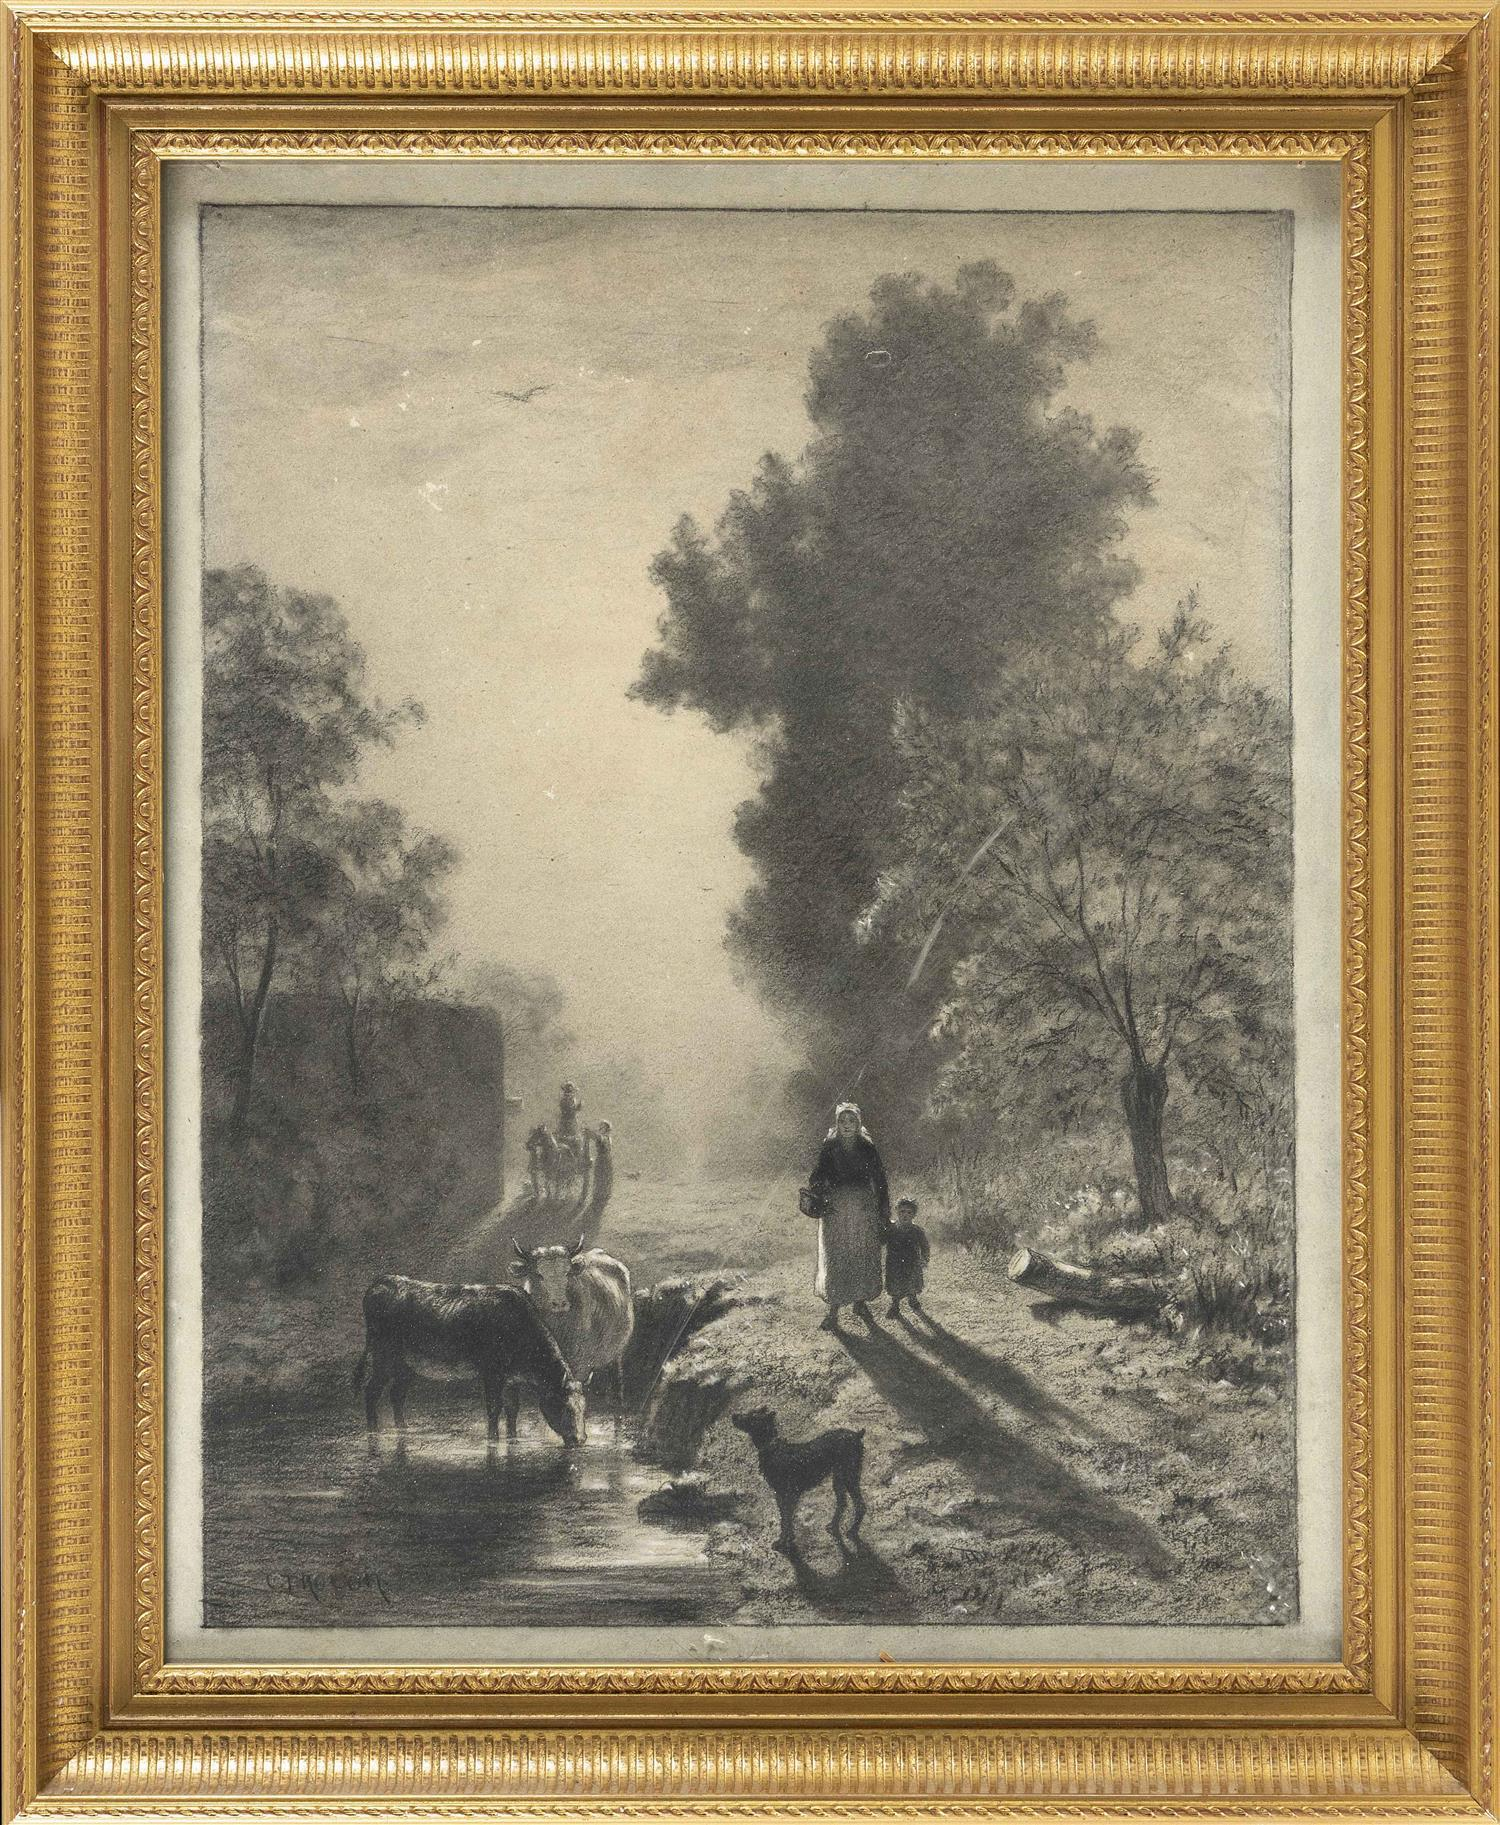 """CONSTANT TROYON, France, 1810-1865, Woman and child with livestock on a rural path., Charcoal on board, 20"""" x 16"""". Framed 25"""" x 20""""."""